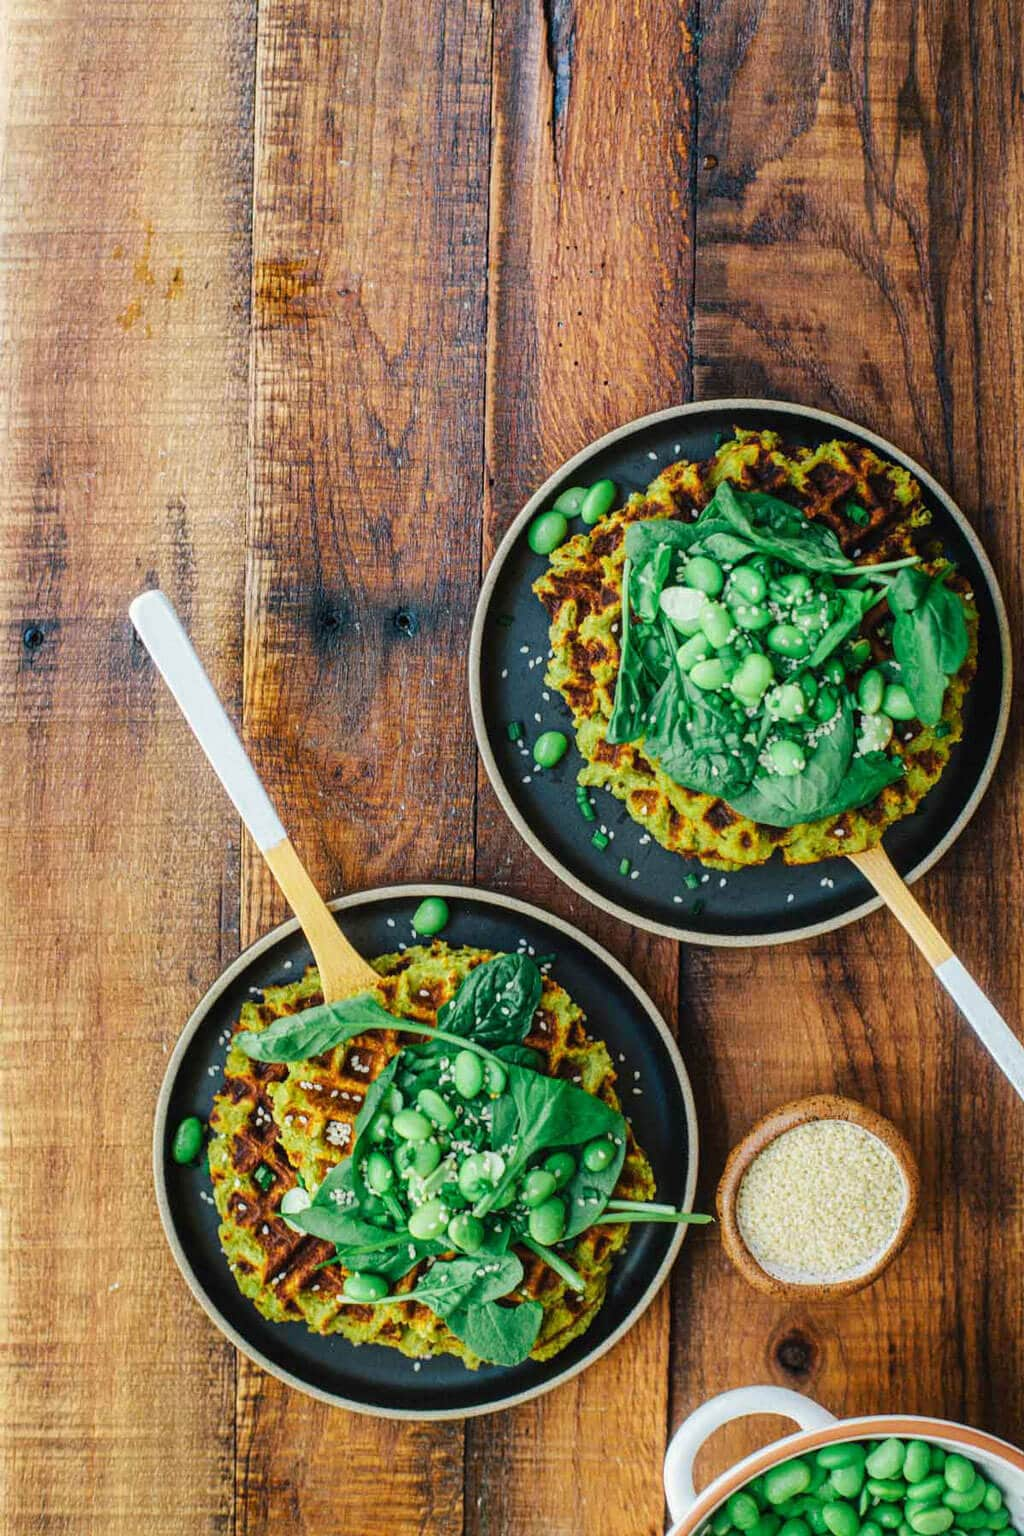 These Asian-flavored Edamame Falafel Waffles are healthy, vegan and super easy to make! No need to use all that oil to make fluffy, crispy falafel - these come together in just 7 minutes in a waffle iron.